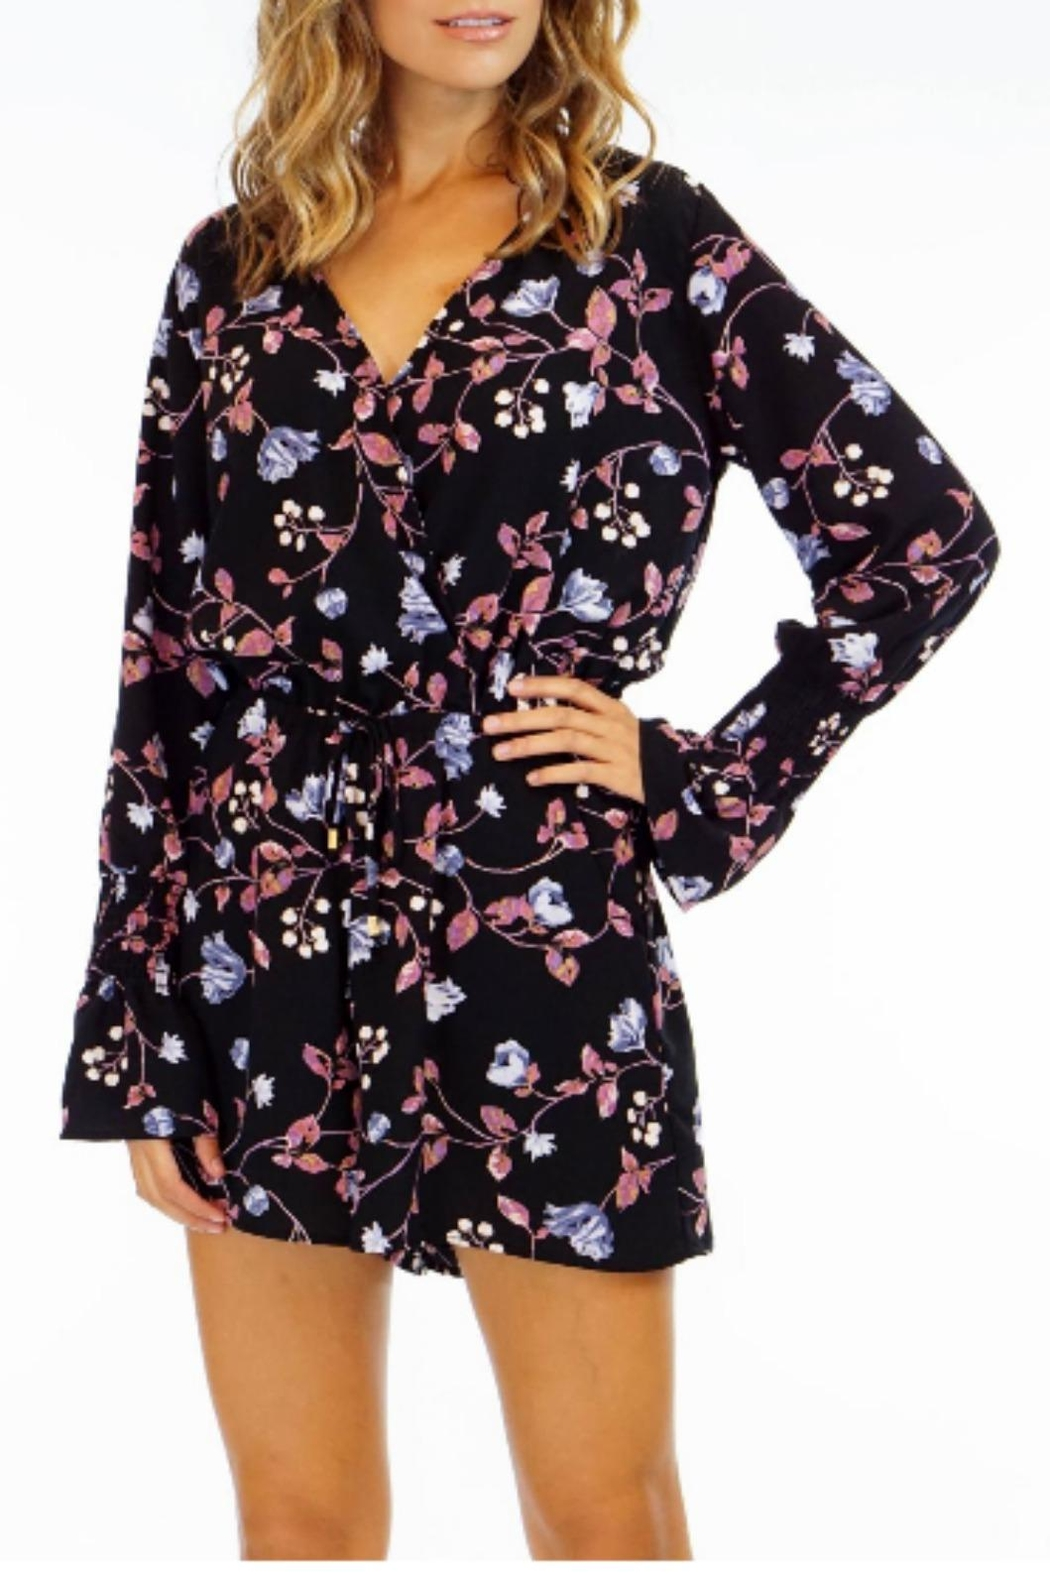 47cf16dca48 Veronica M Black Floral Romper from New Jersey by Wink Boutique ...